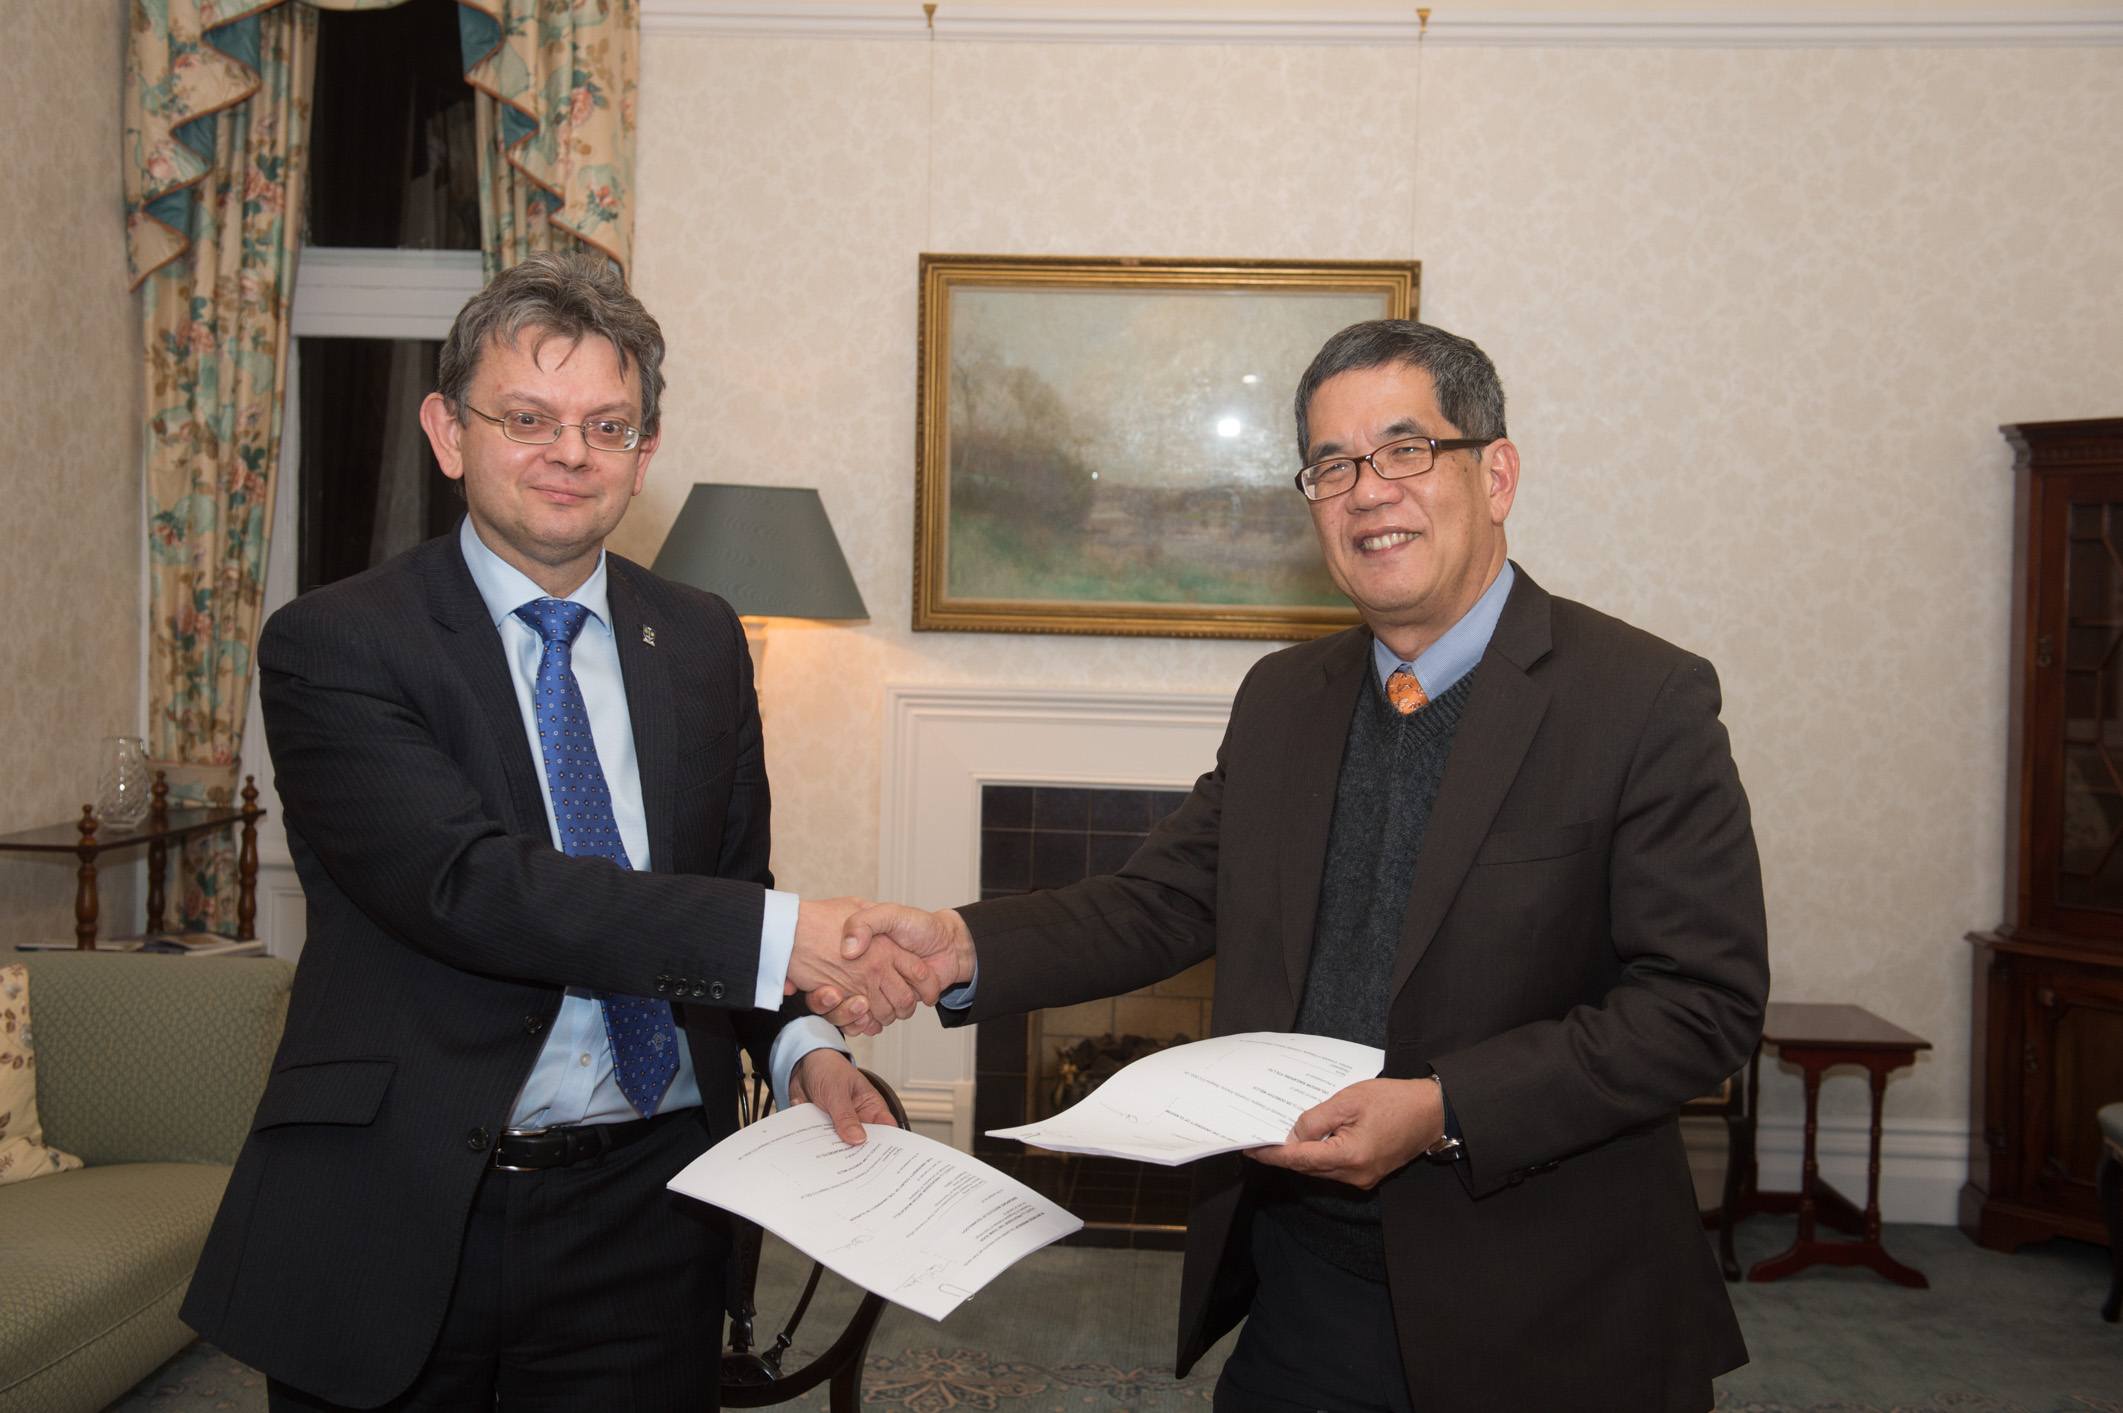 Signing of the joint degree programme between Prof Anton Muscatelli, Principal and Vice-Chancellor of the University of Glasgow, and Prof Tan Thiam Soon, President, SIT.